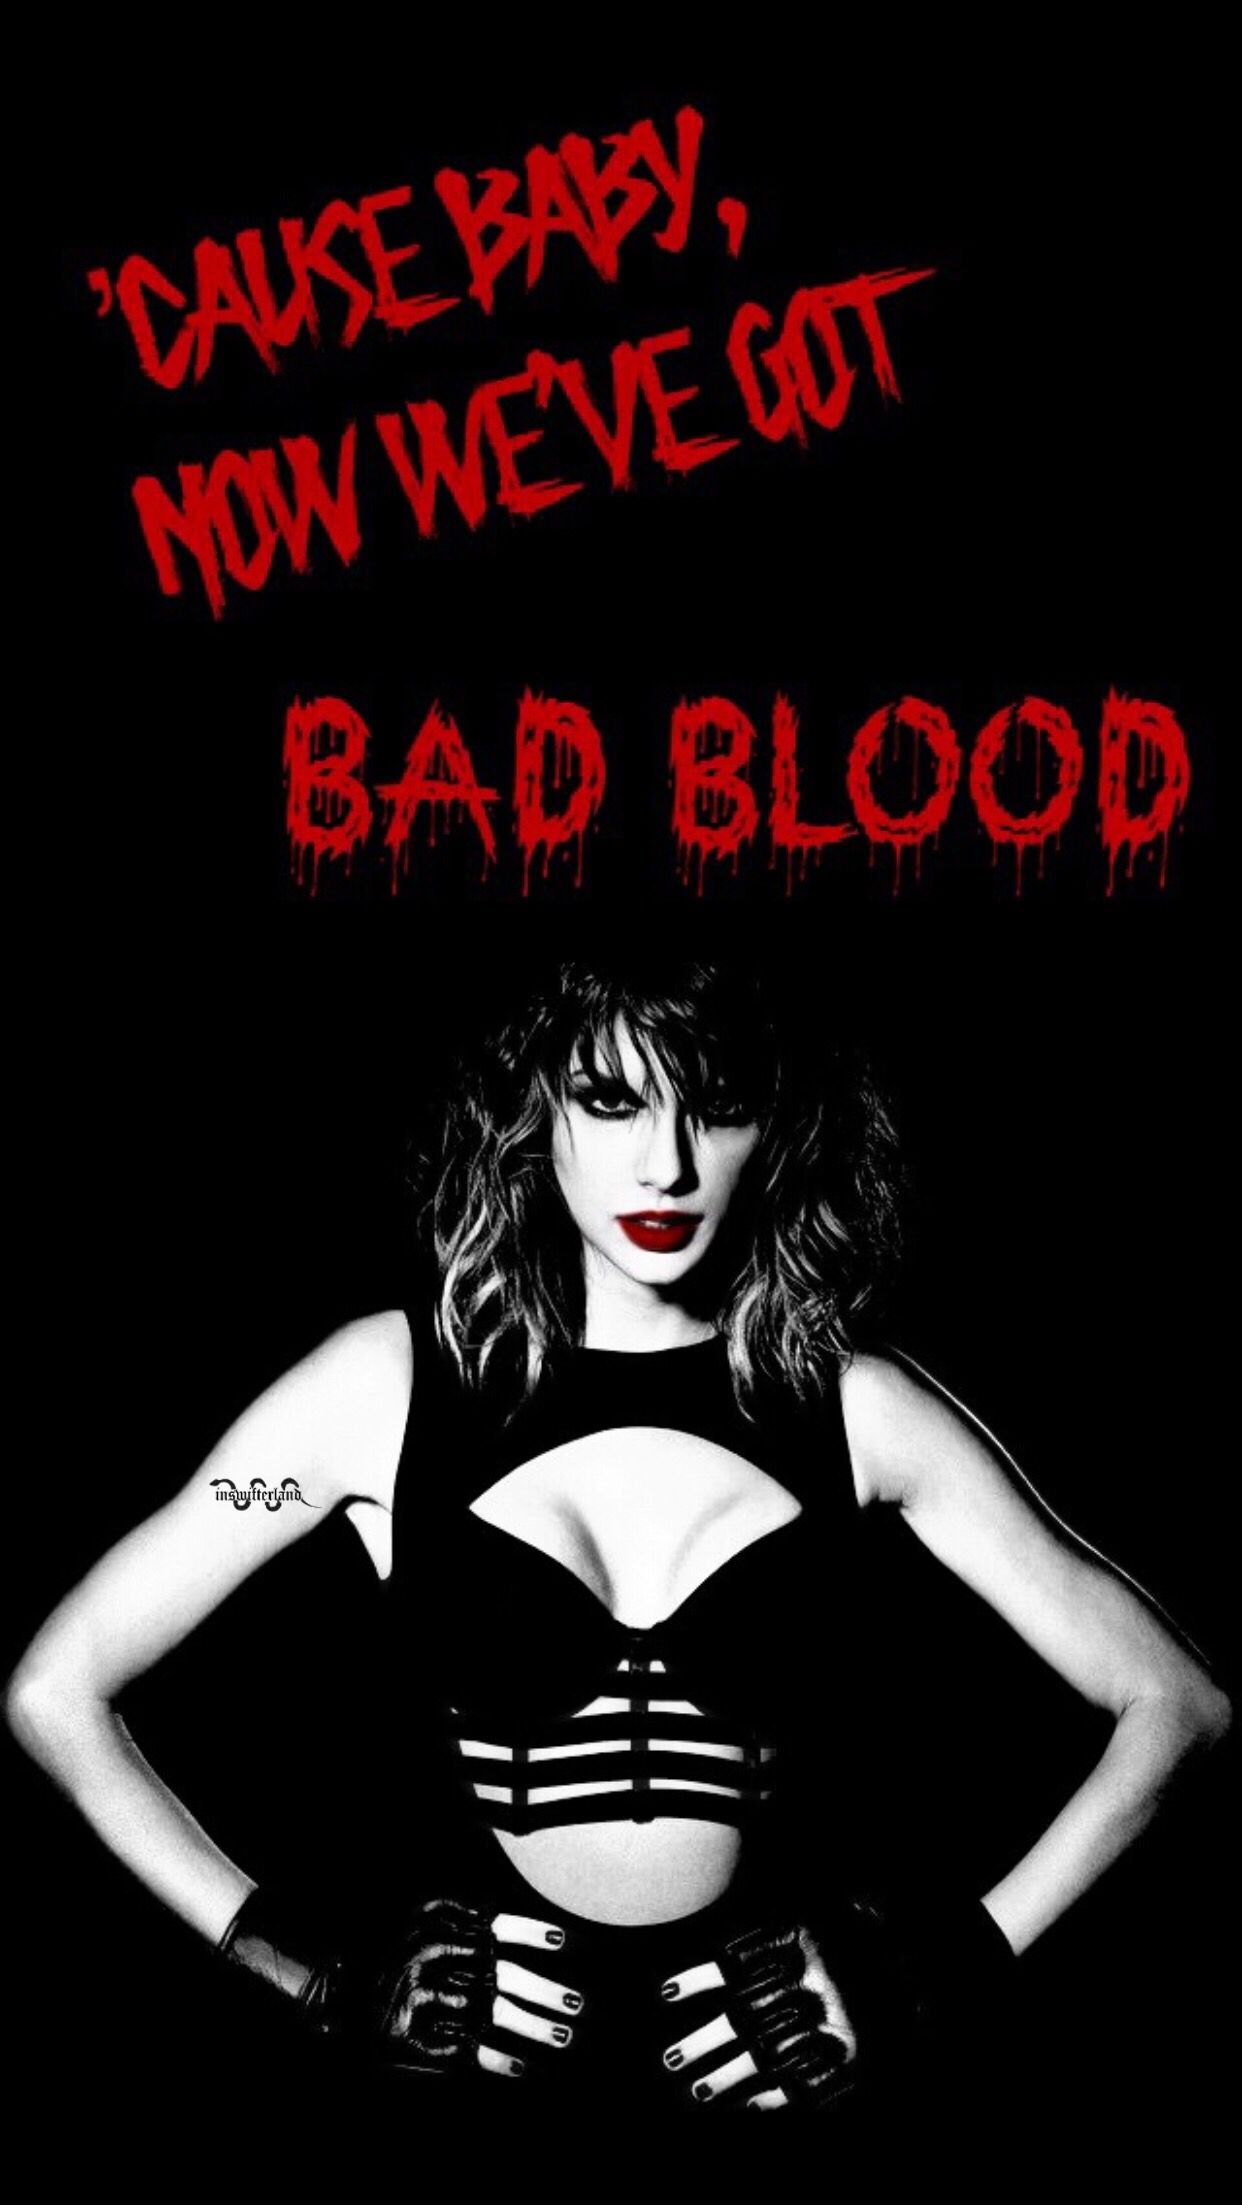 Bad Blood Quotes Taylor Swift Bad Blood Wallpaper Taylorswift Wallpaper Wallpaperiphone